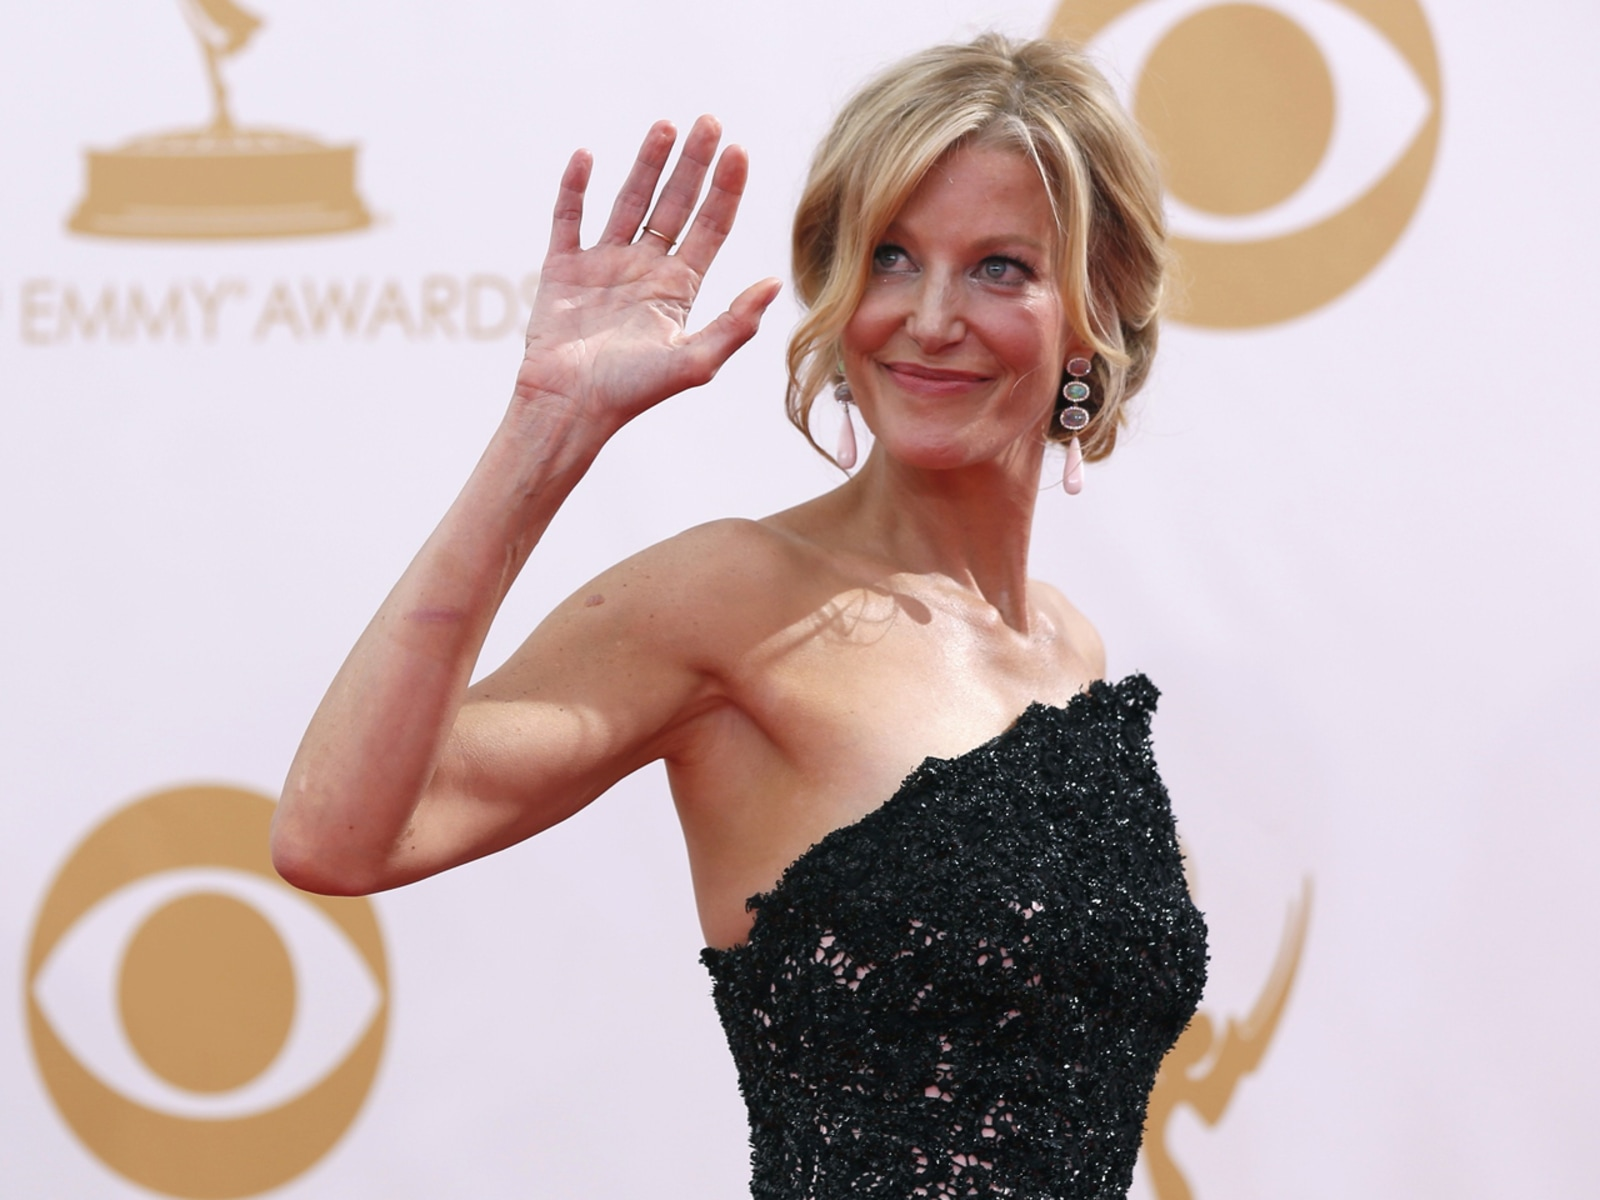 Image: Actress Anna Gunn waves as she arrives at the 65th Primetime Emmy Awards in Los Angeles